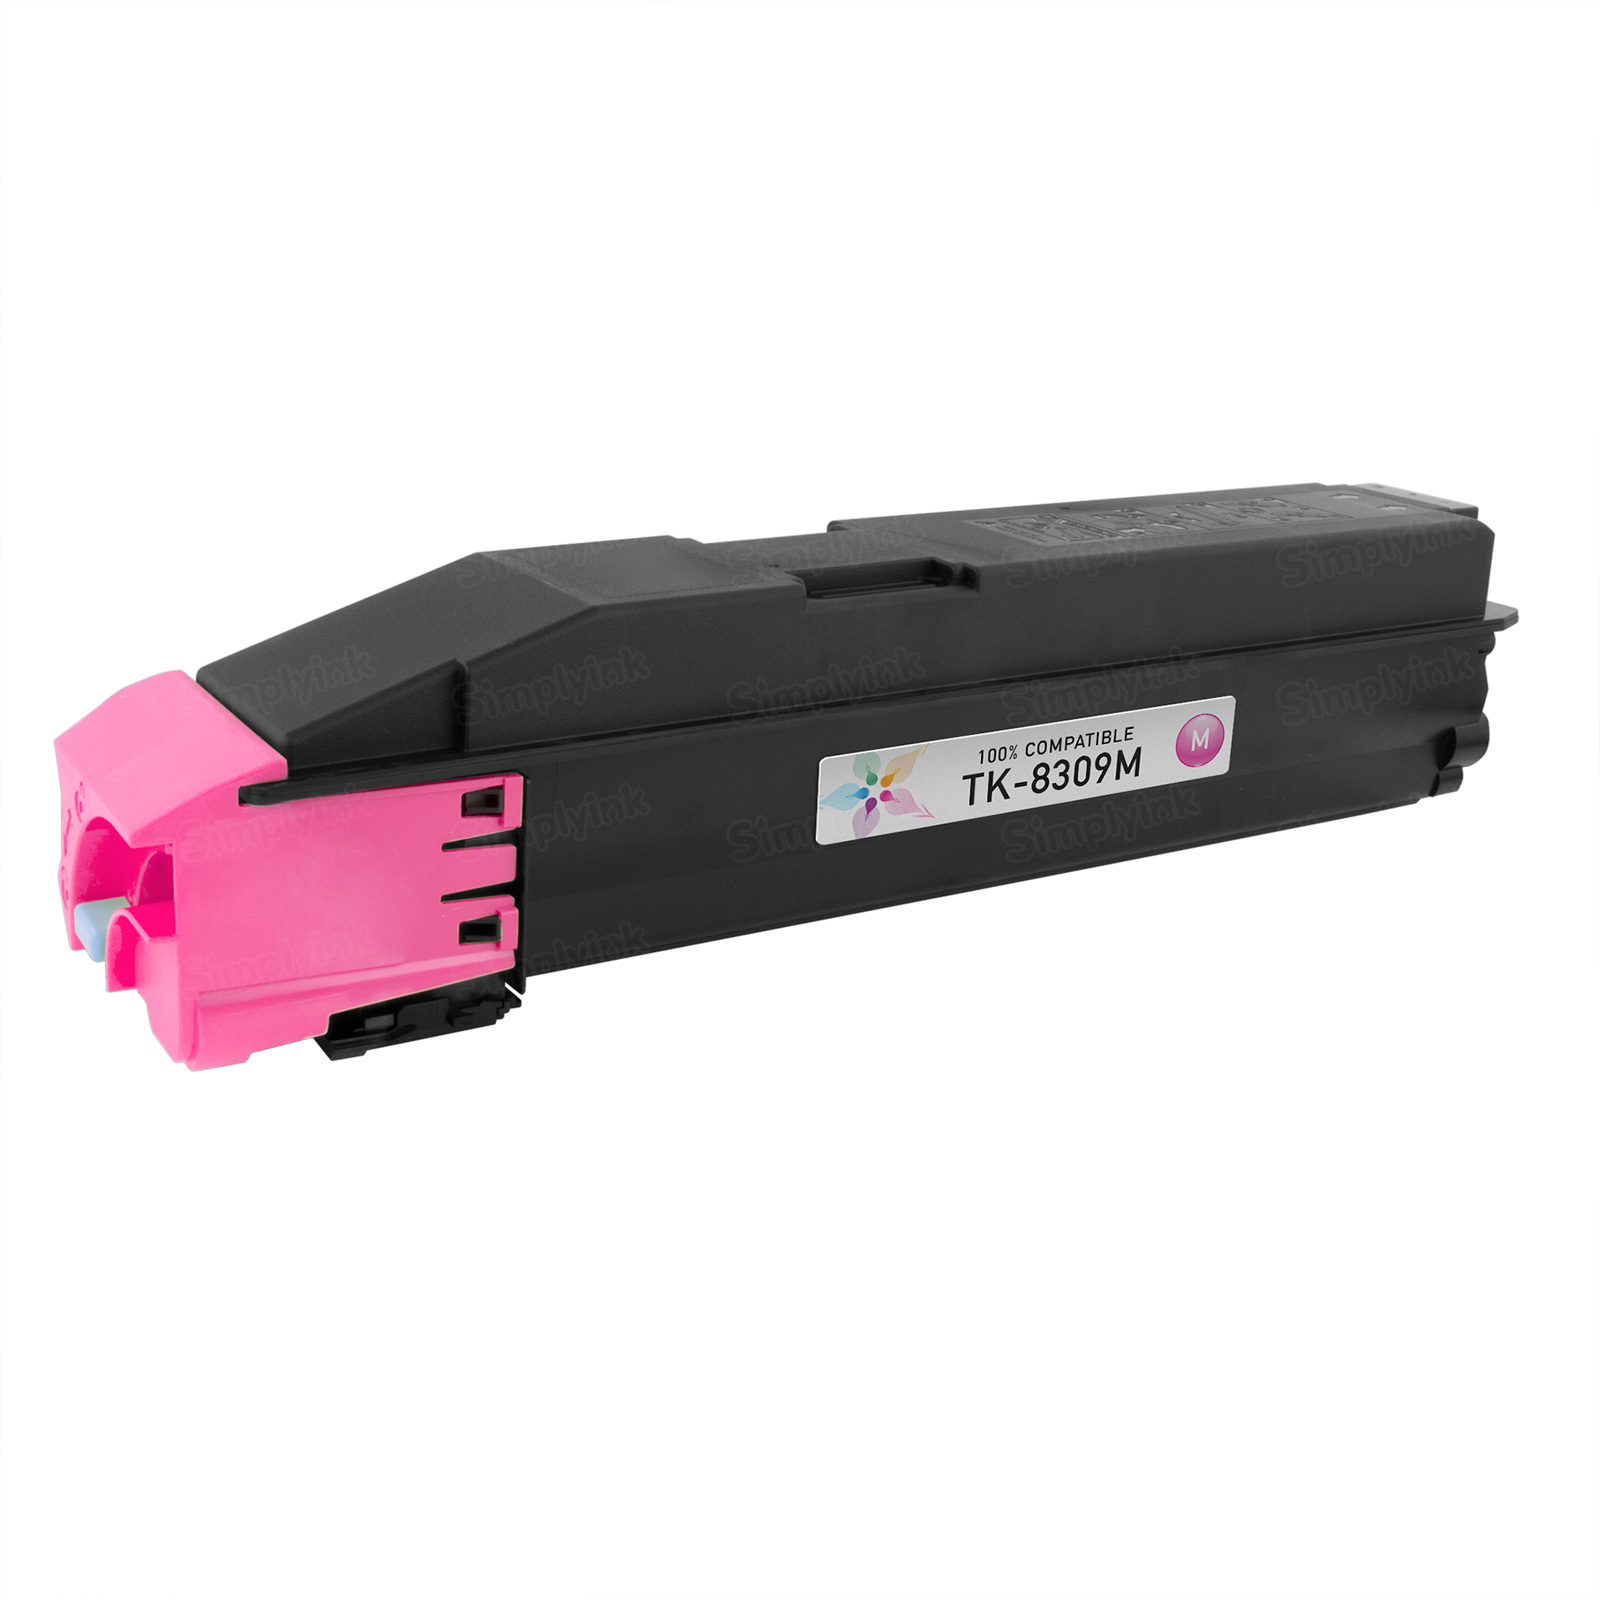 Kyocera Compatible TK-8309M Magenta Toner Cartridge